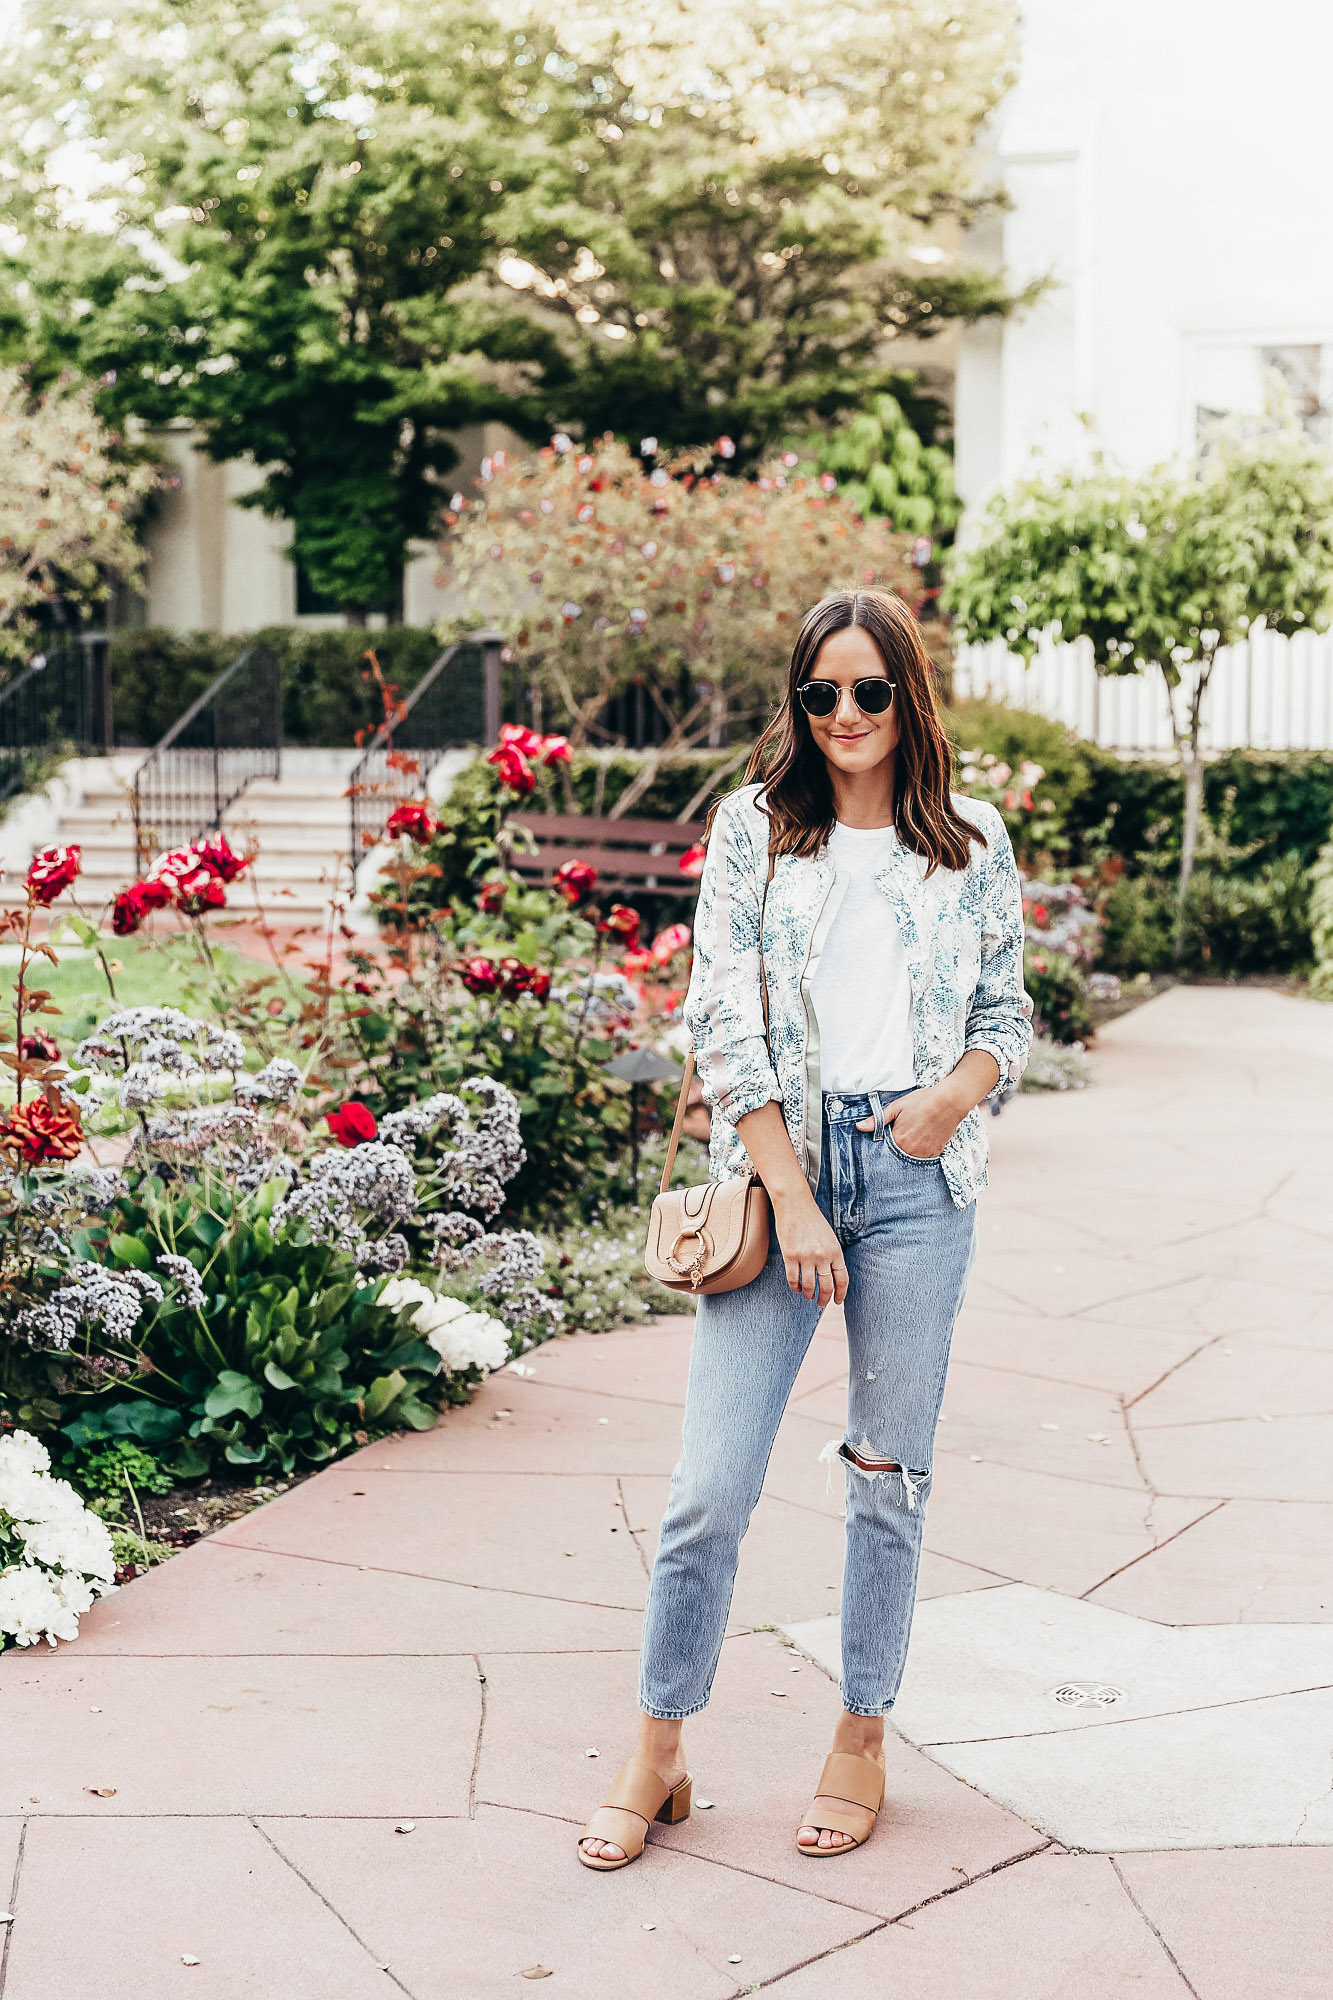 The Details.  Tart Collections Jacket  |  Free People Tank  |  Levi's Jeans  |  Madewell Sandals  |  See by Chloe Bag  |  Ray-Ban Sunglasses